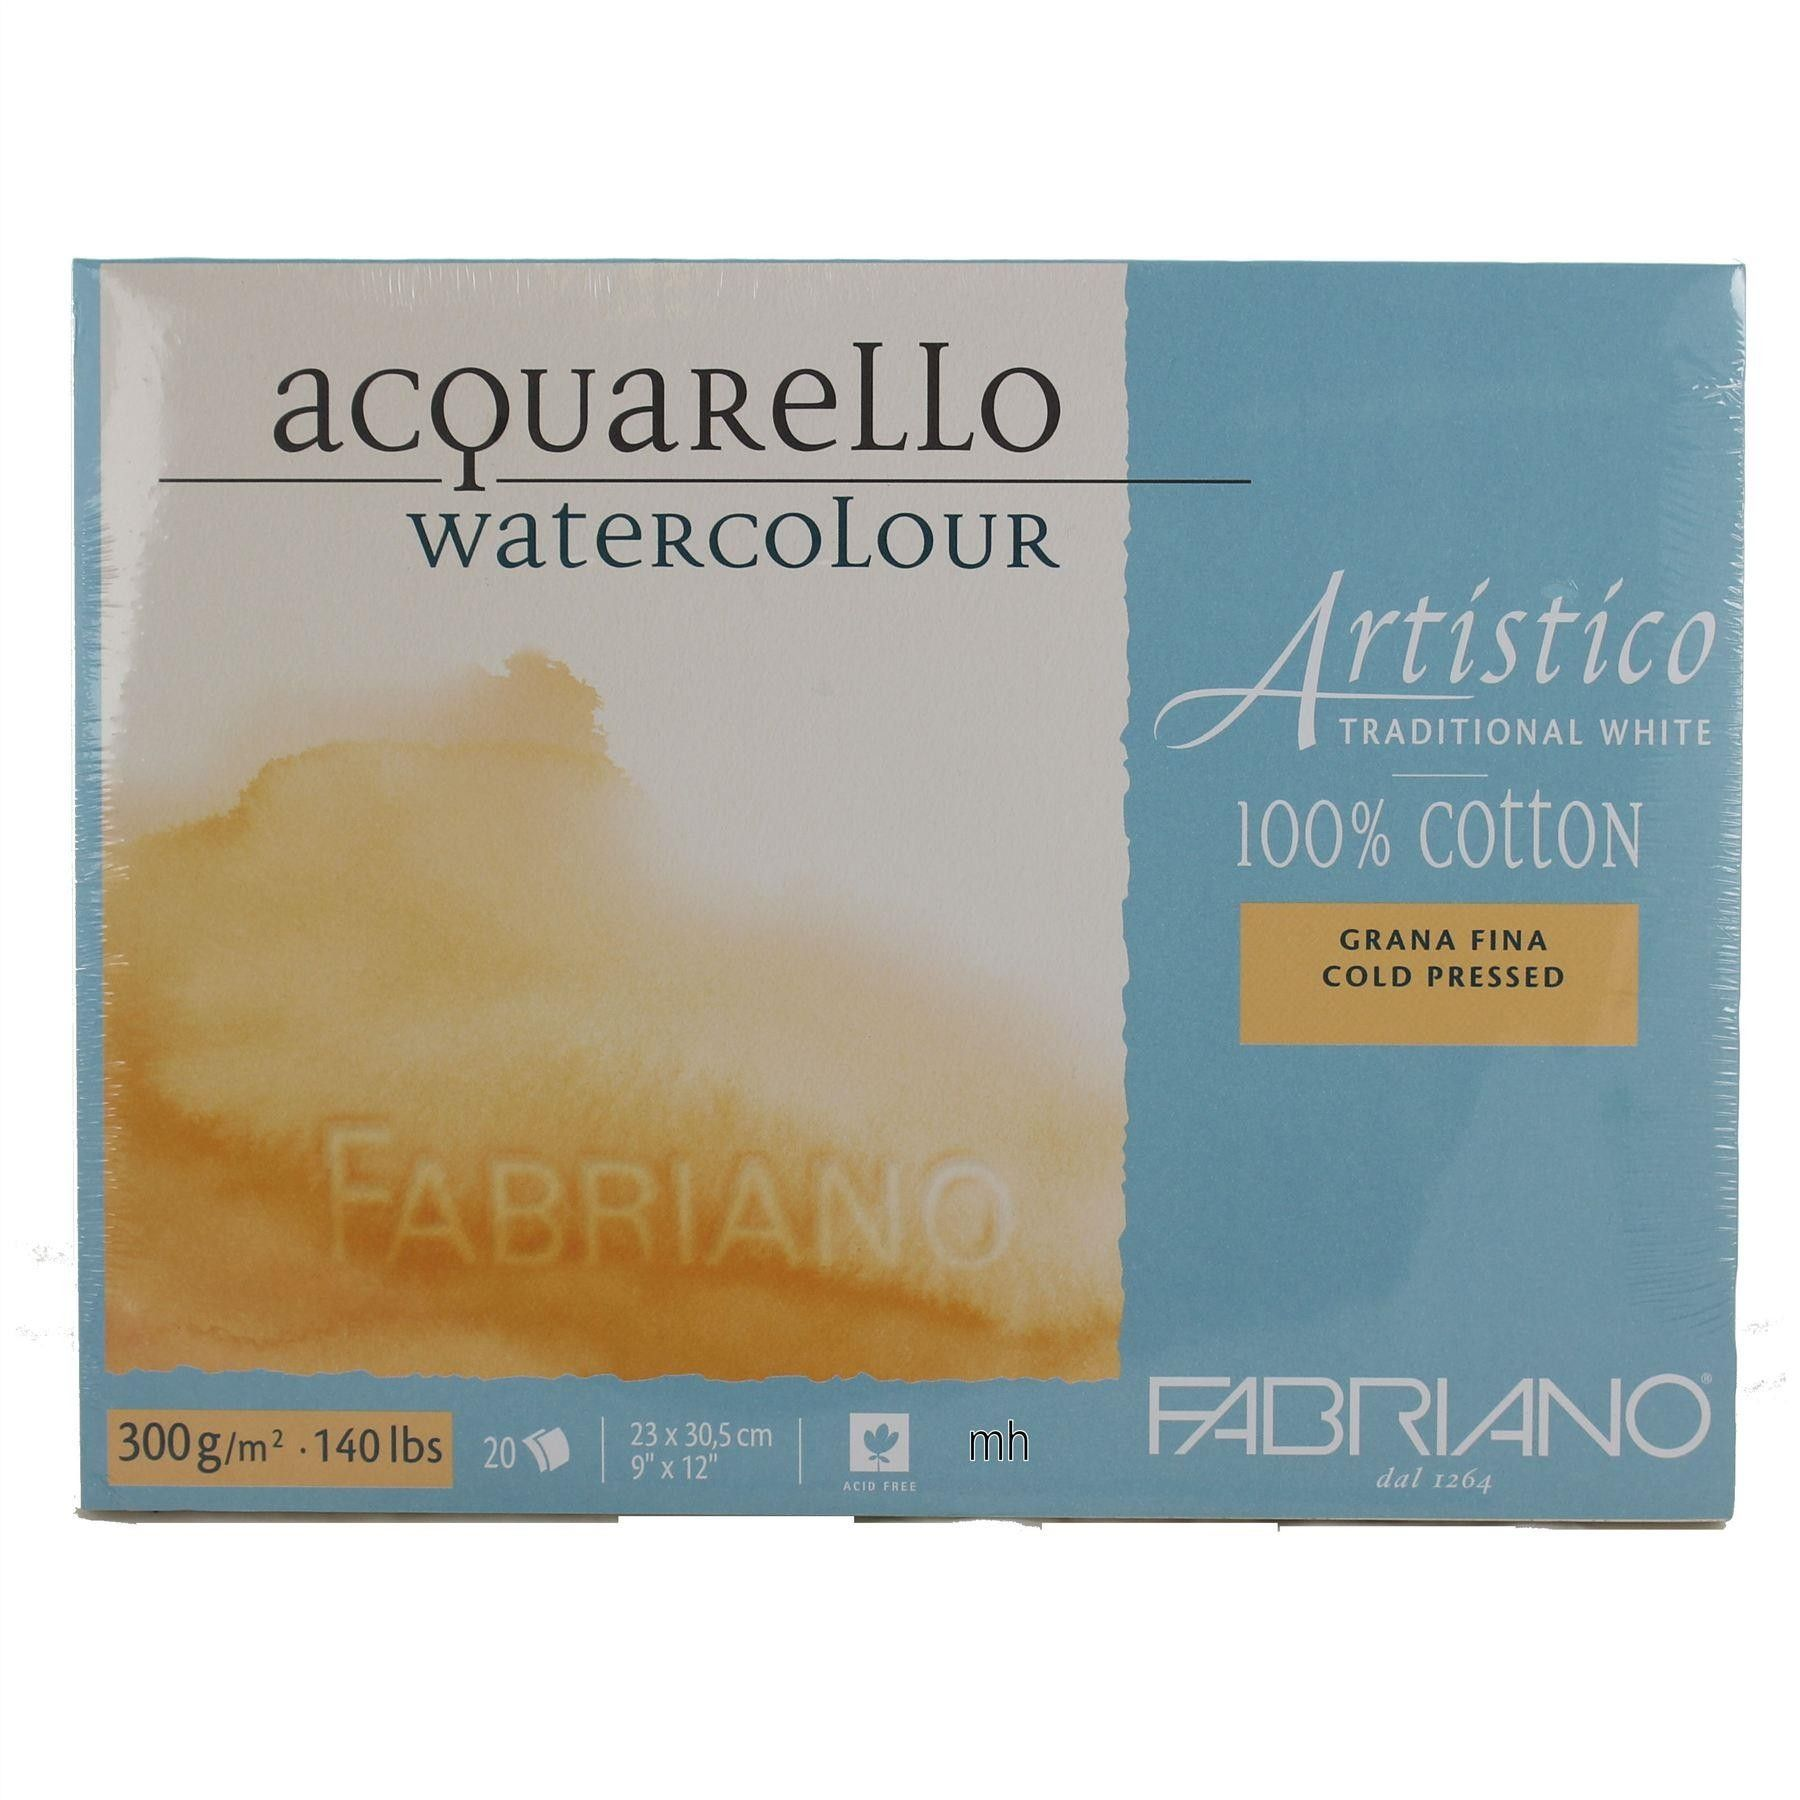 Fabriano Artistico Acquarello Traditional White 100 Cotton Cold